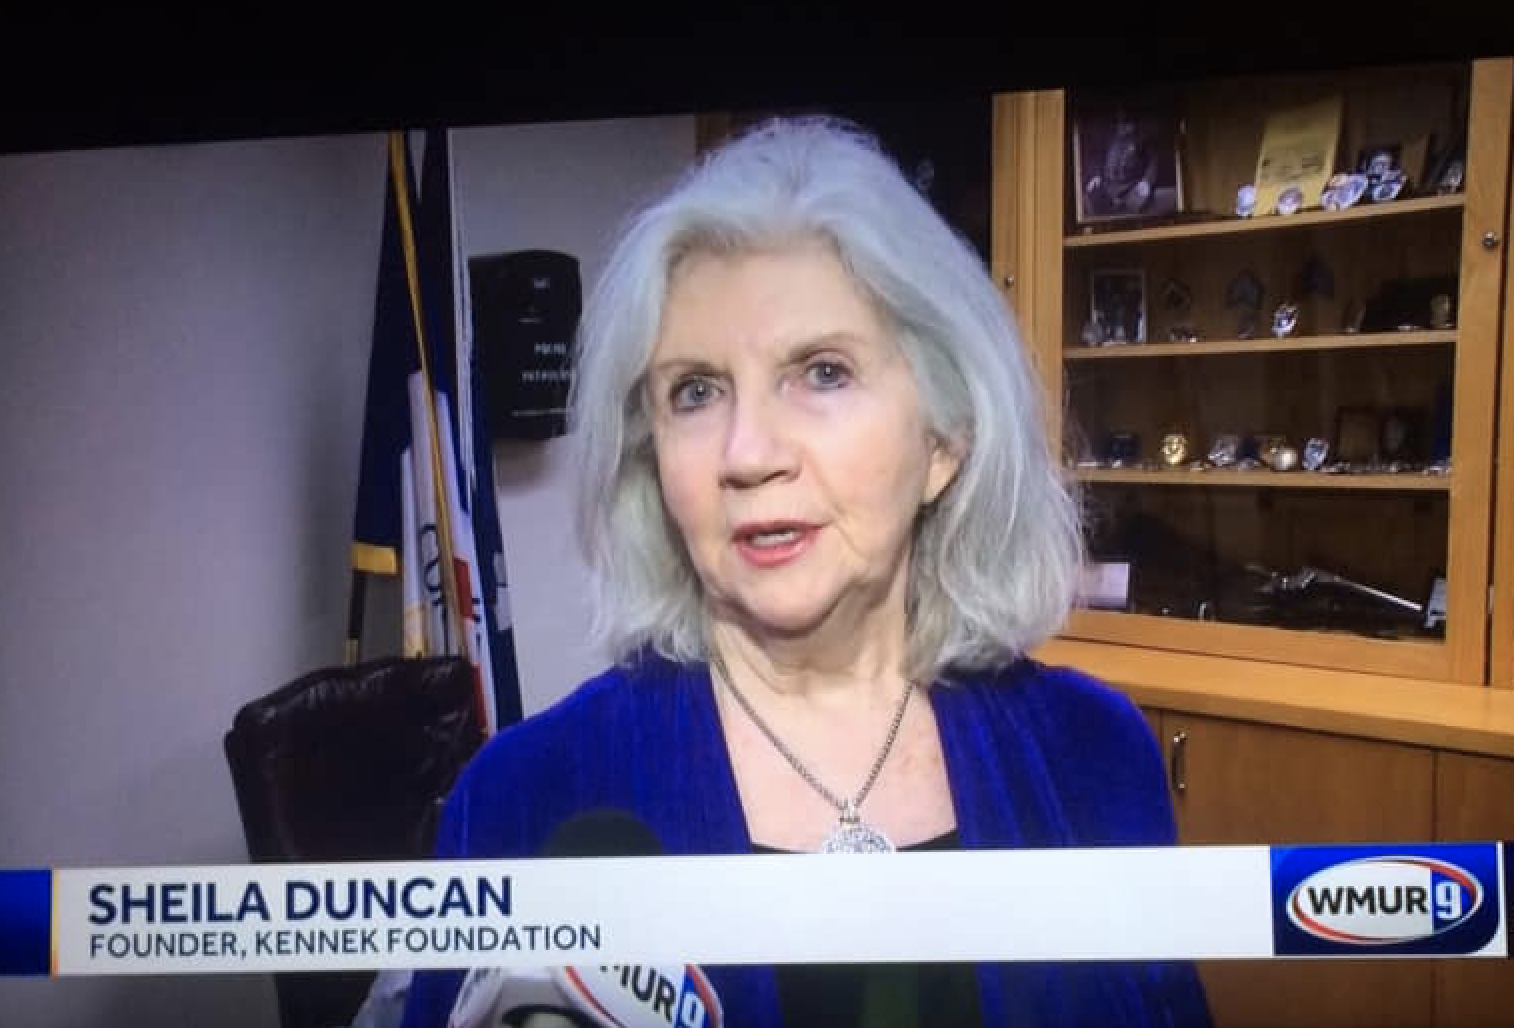 Sheila Duncan on air